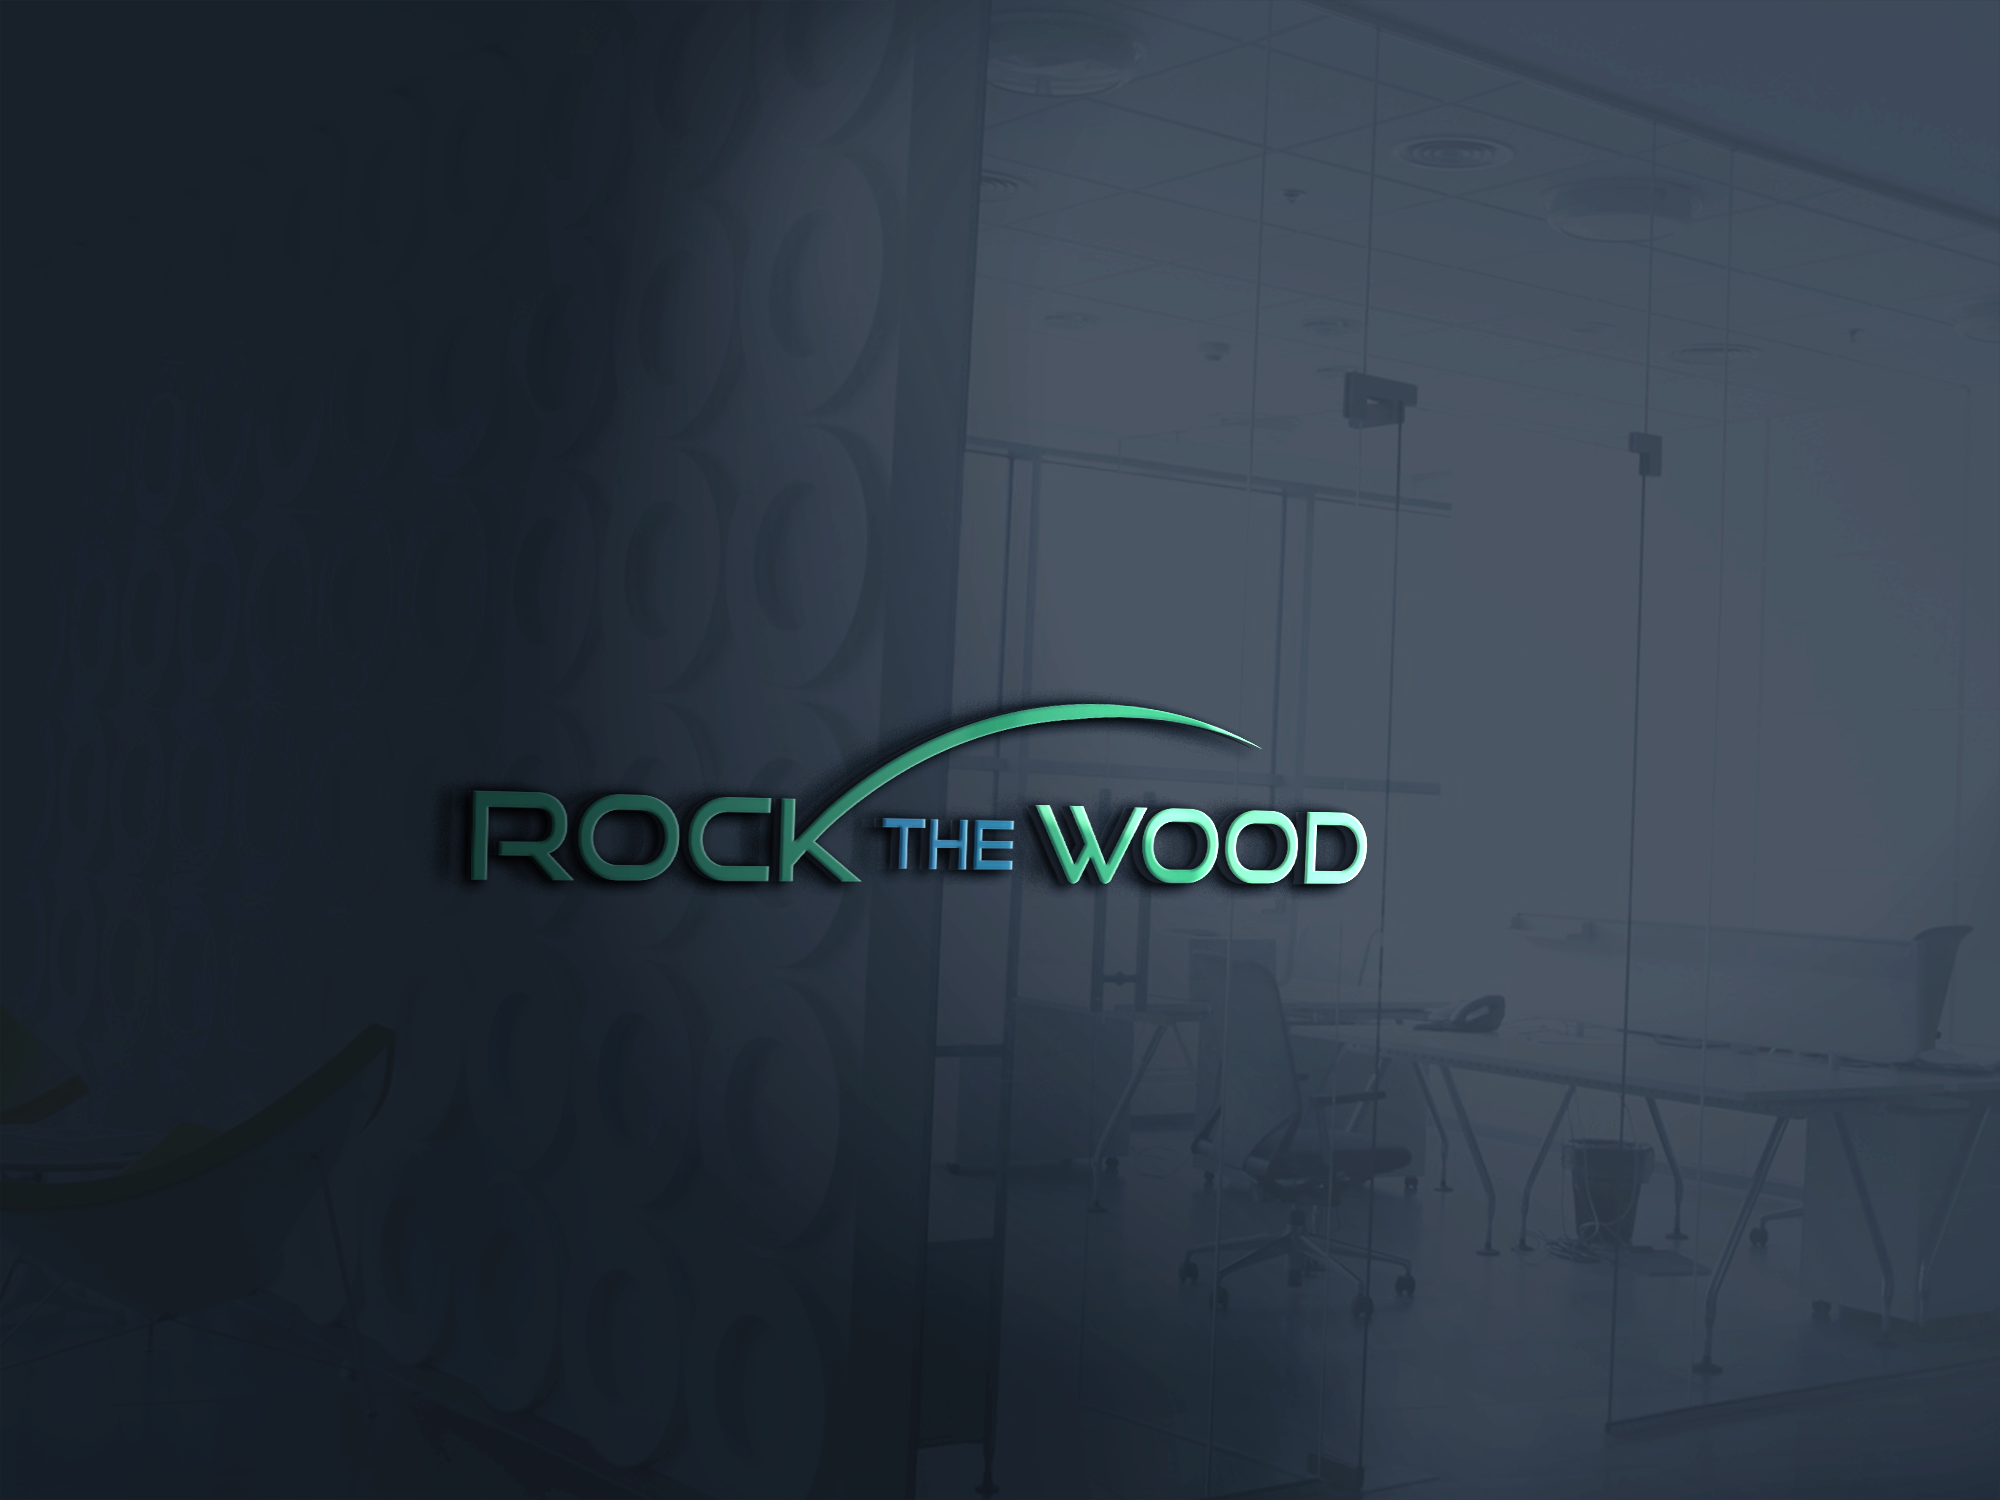 Logo Design by Prohor Ghagra - Entry No. 22 in the Logo Design Contest New Logo Design for Rock the Wood.